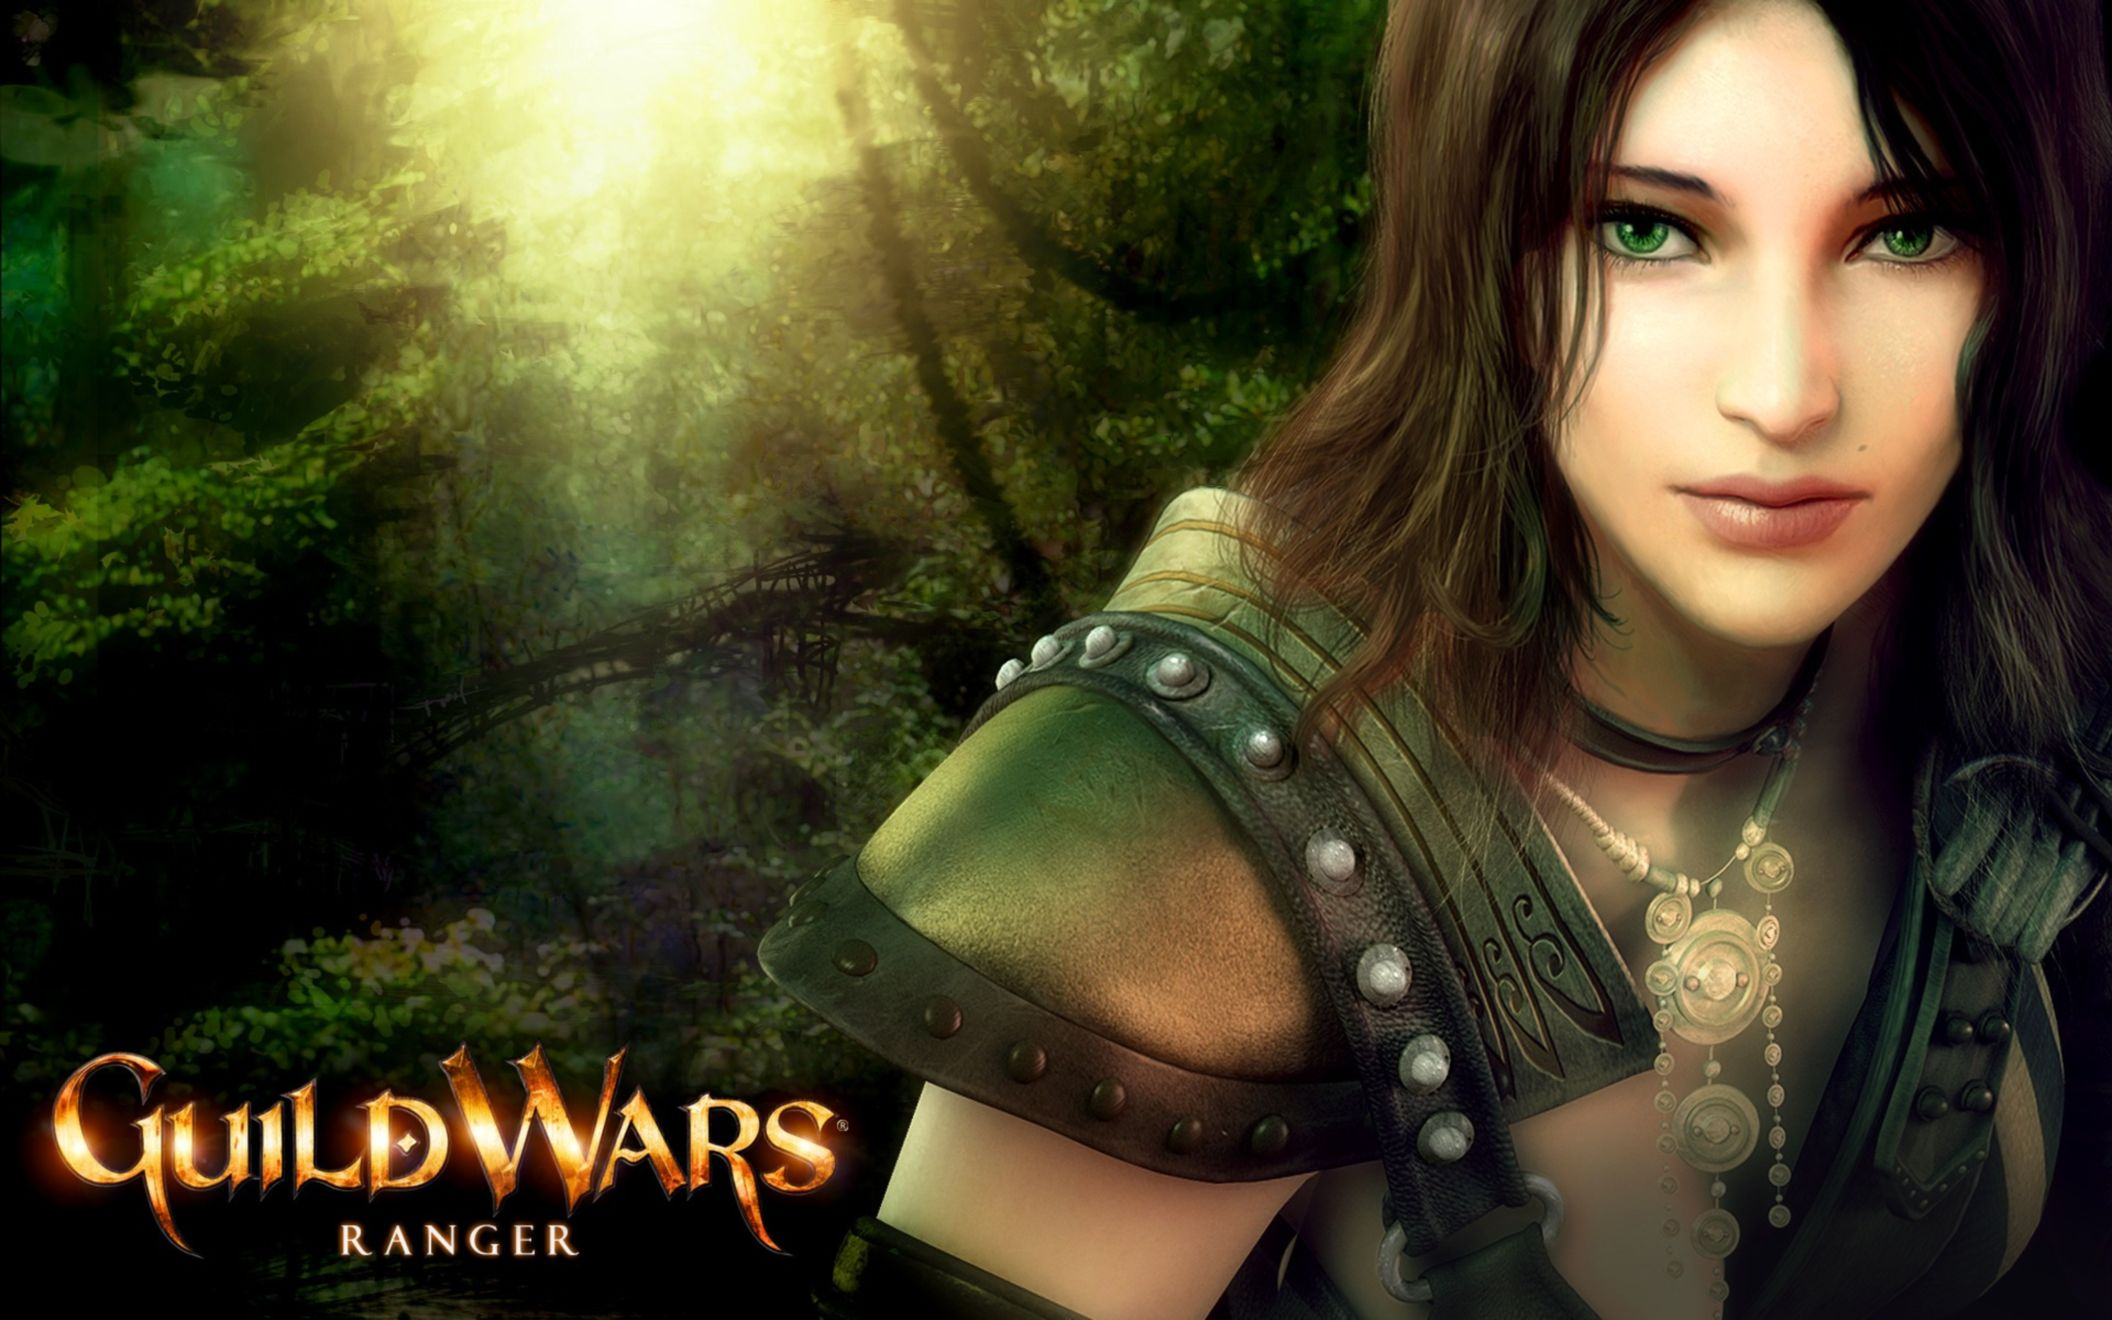 Download free HD Guildwars Ranger Wide Wallpaper, image